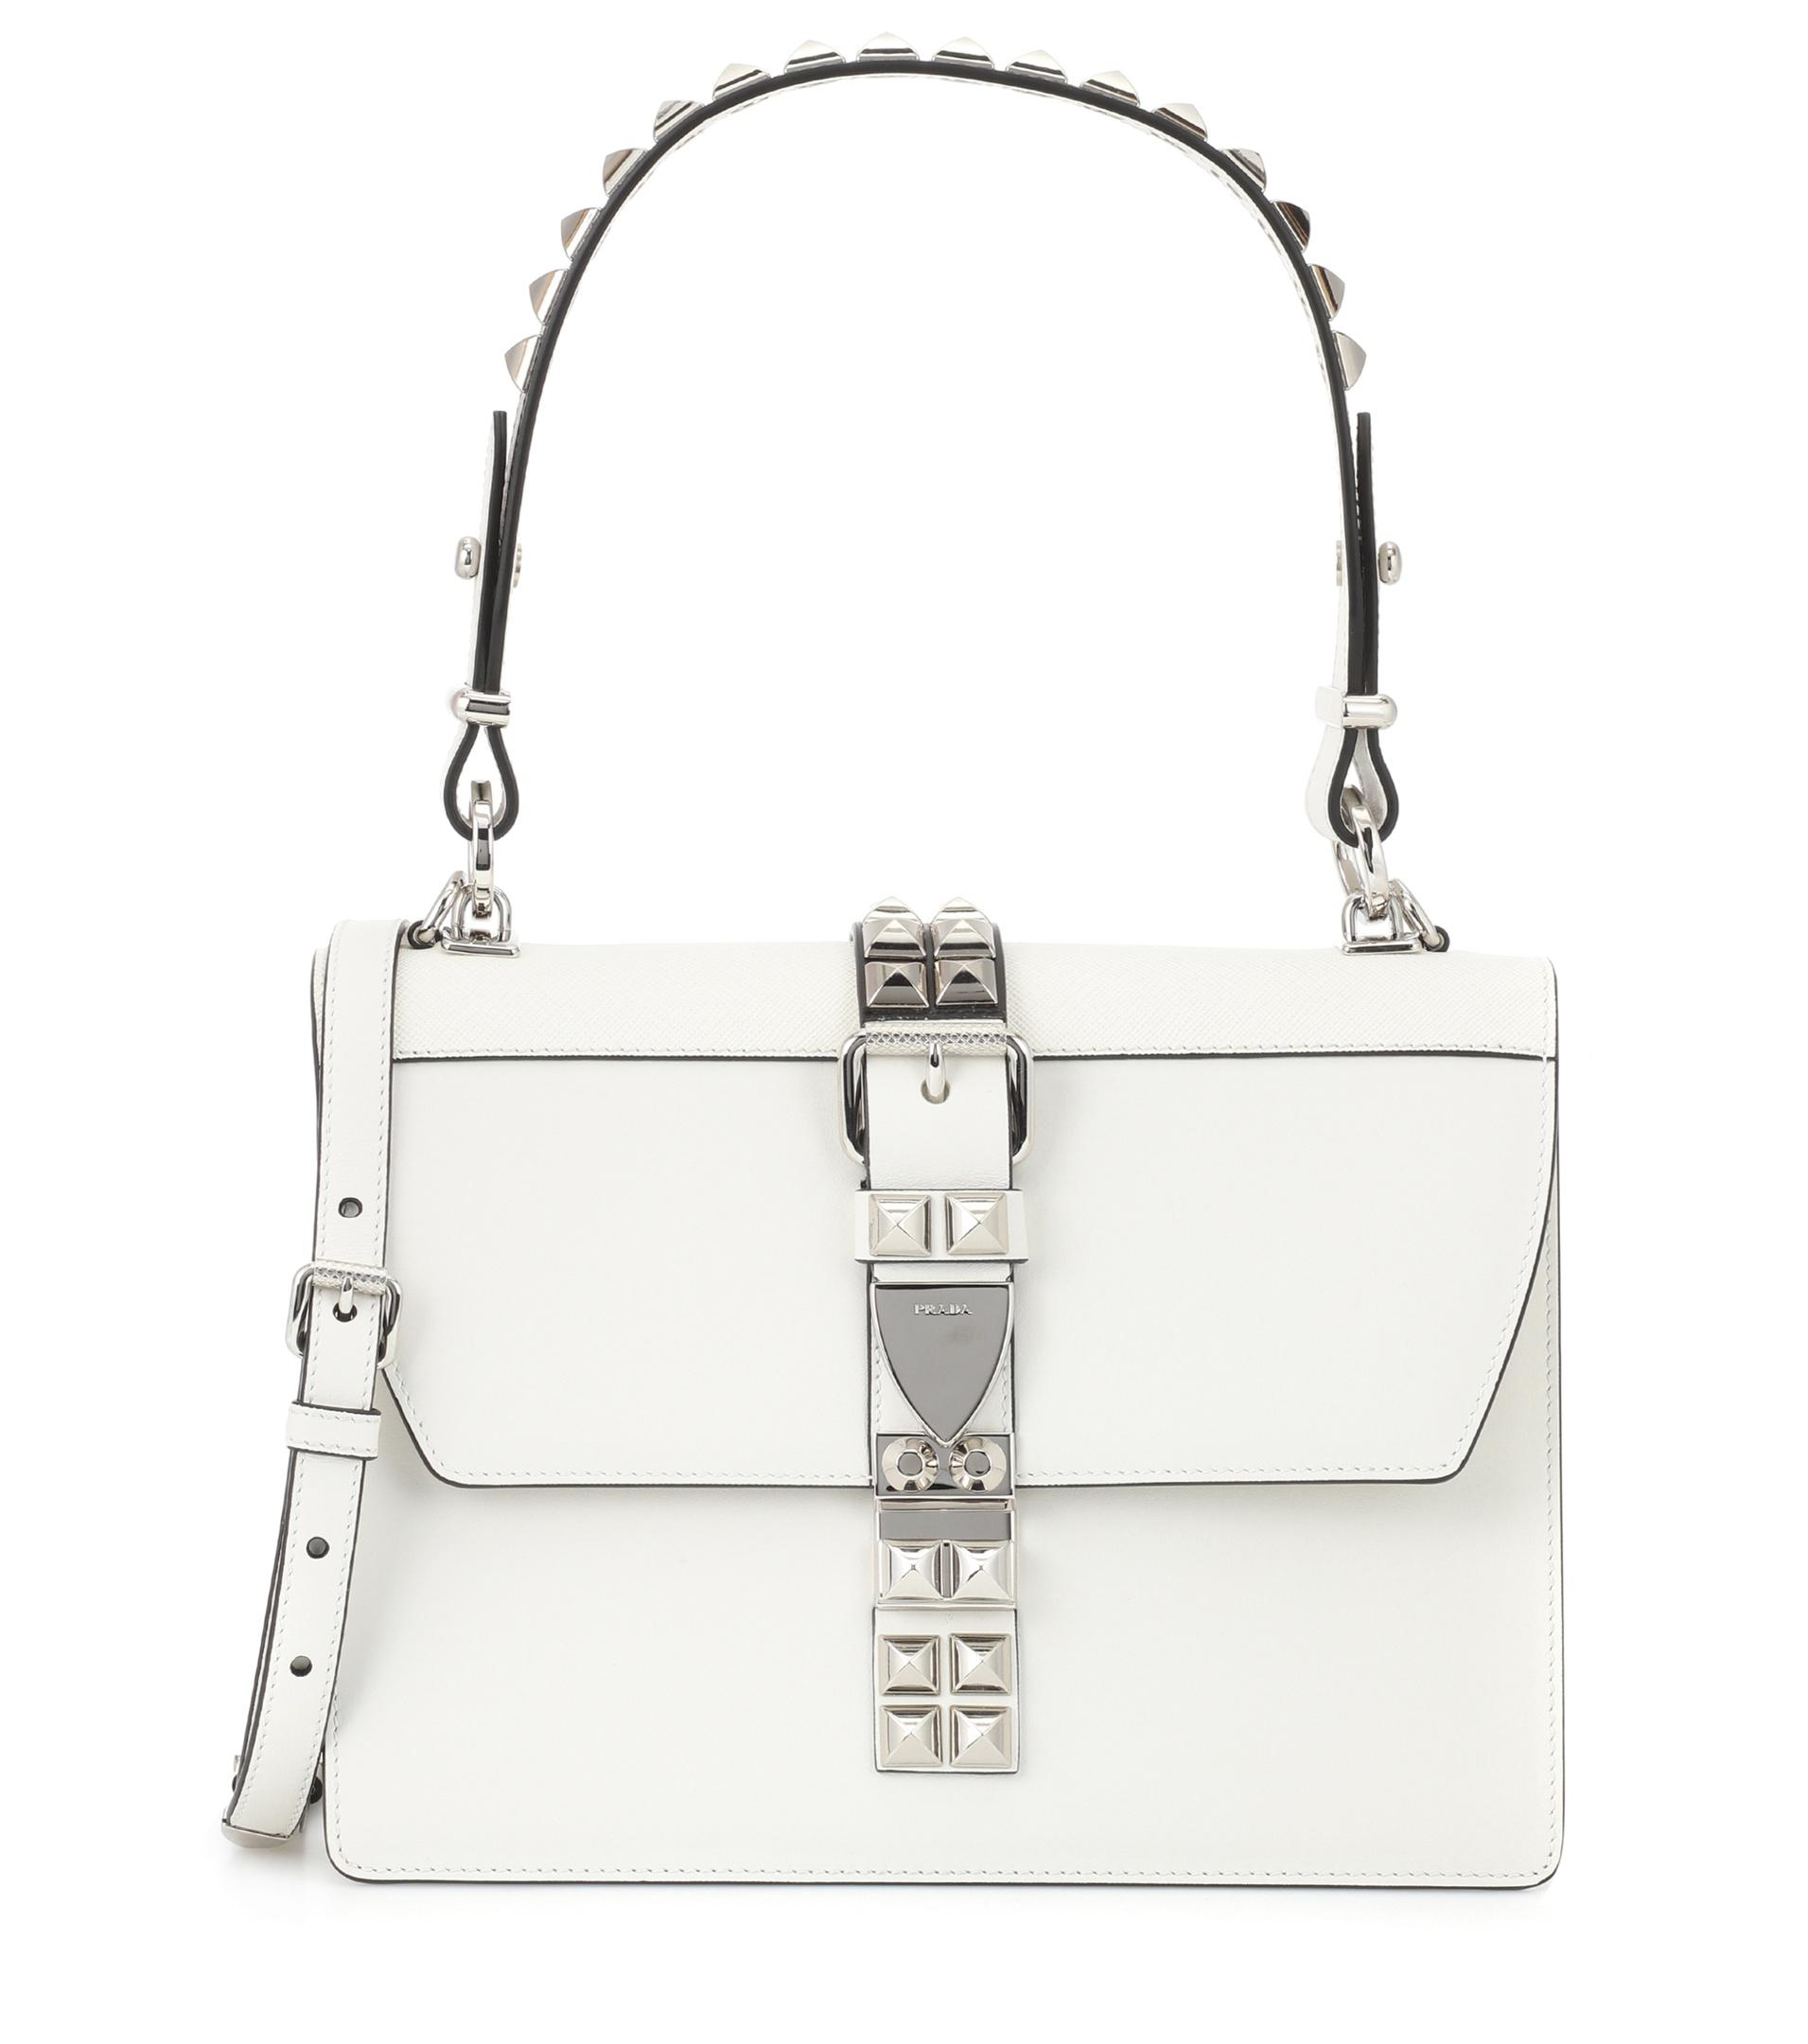 6fd347203792 Lyst - Prada Elektra Leather Shoulder Bag in White